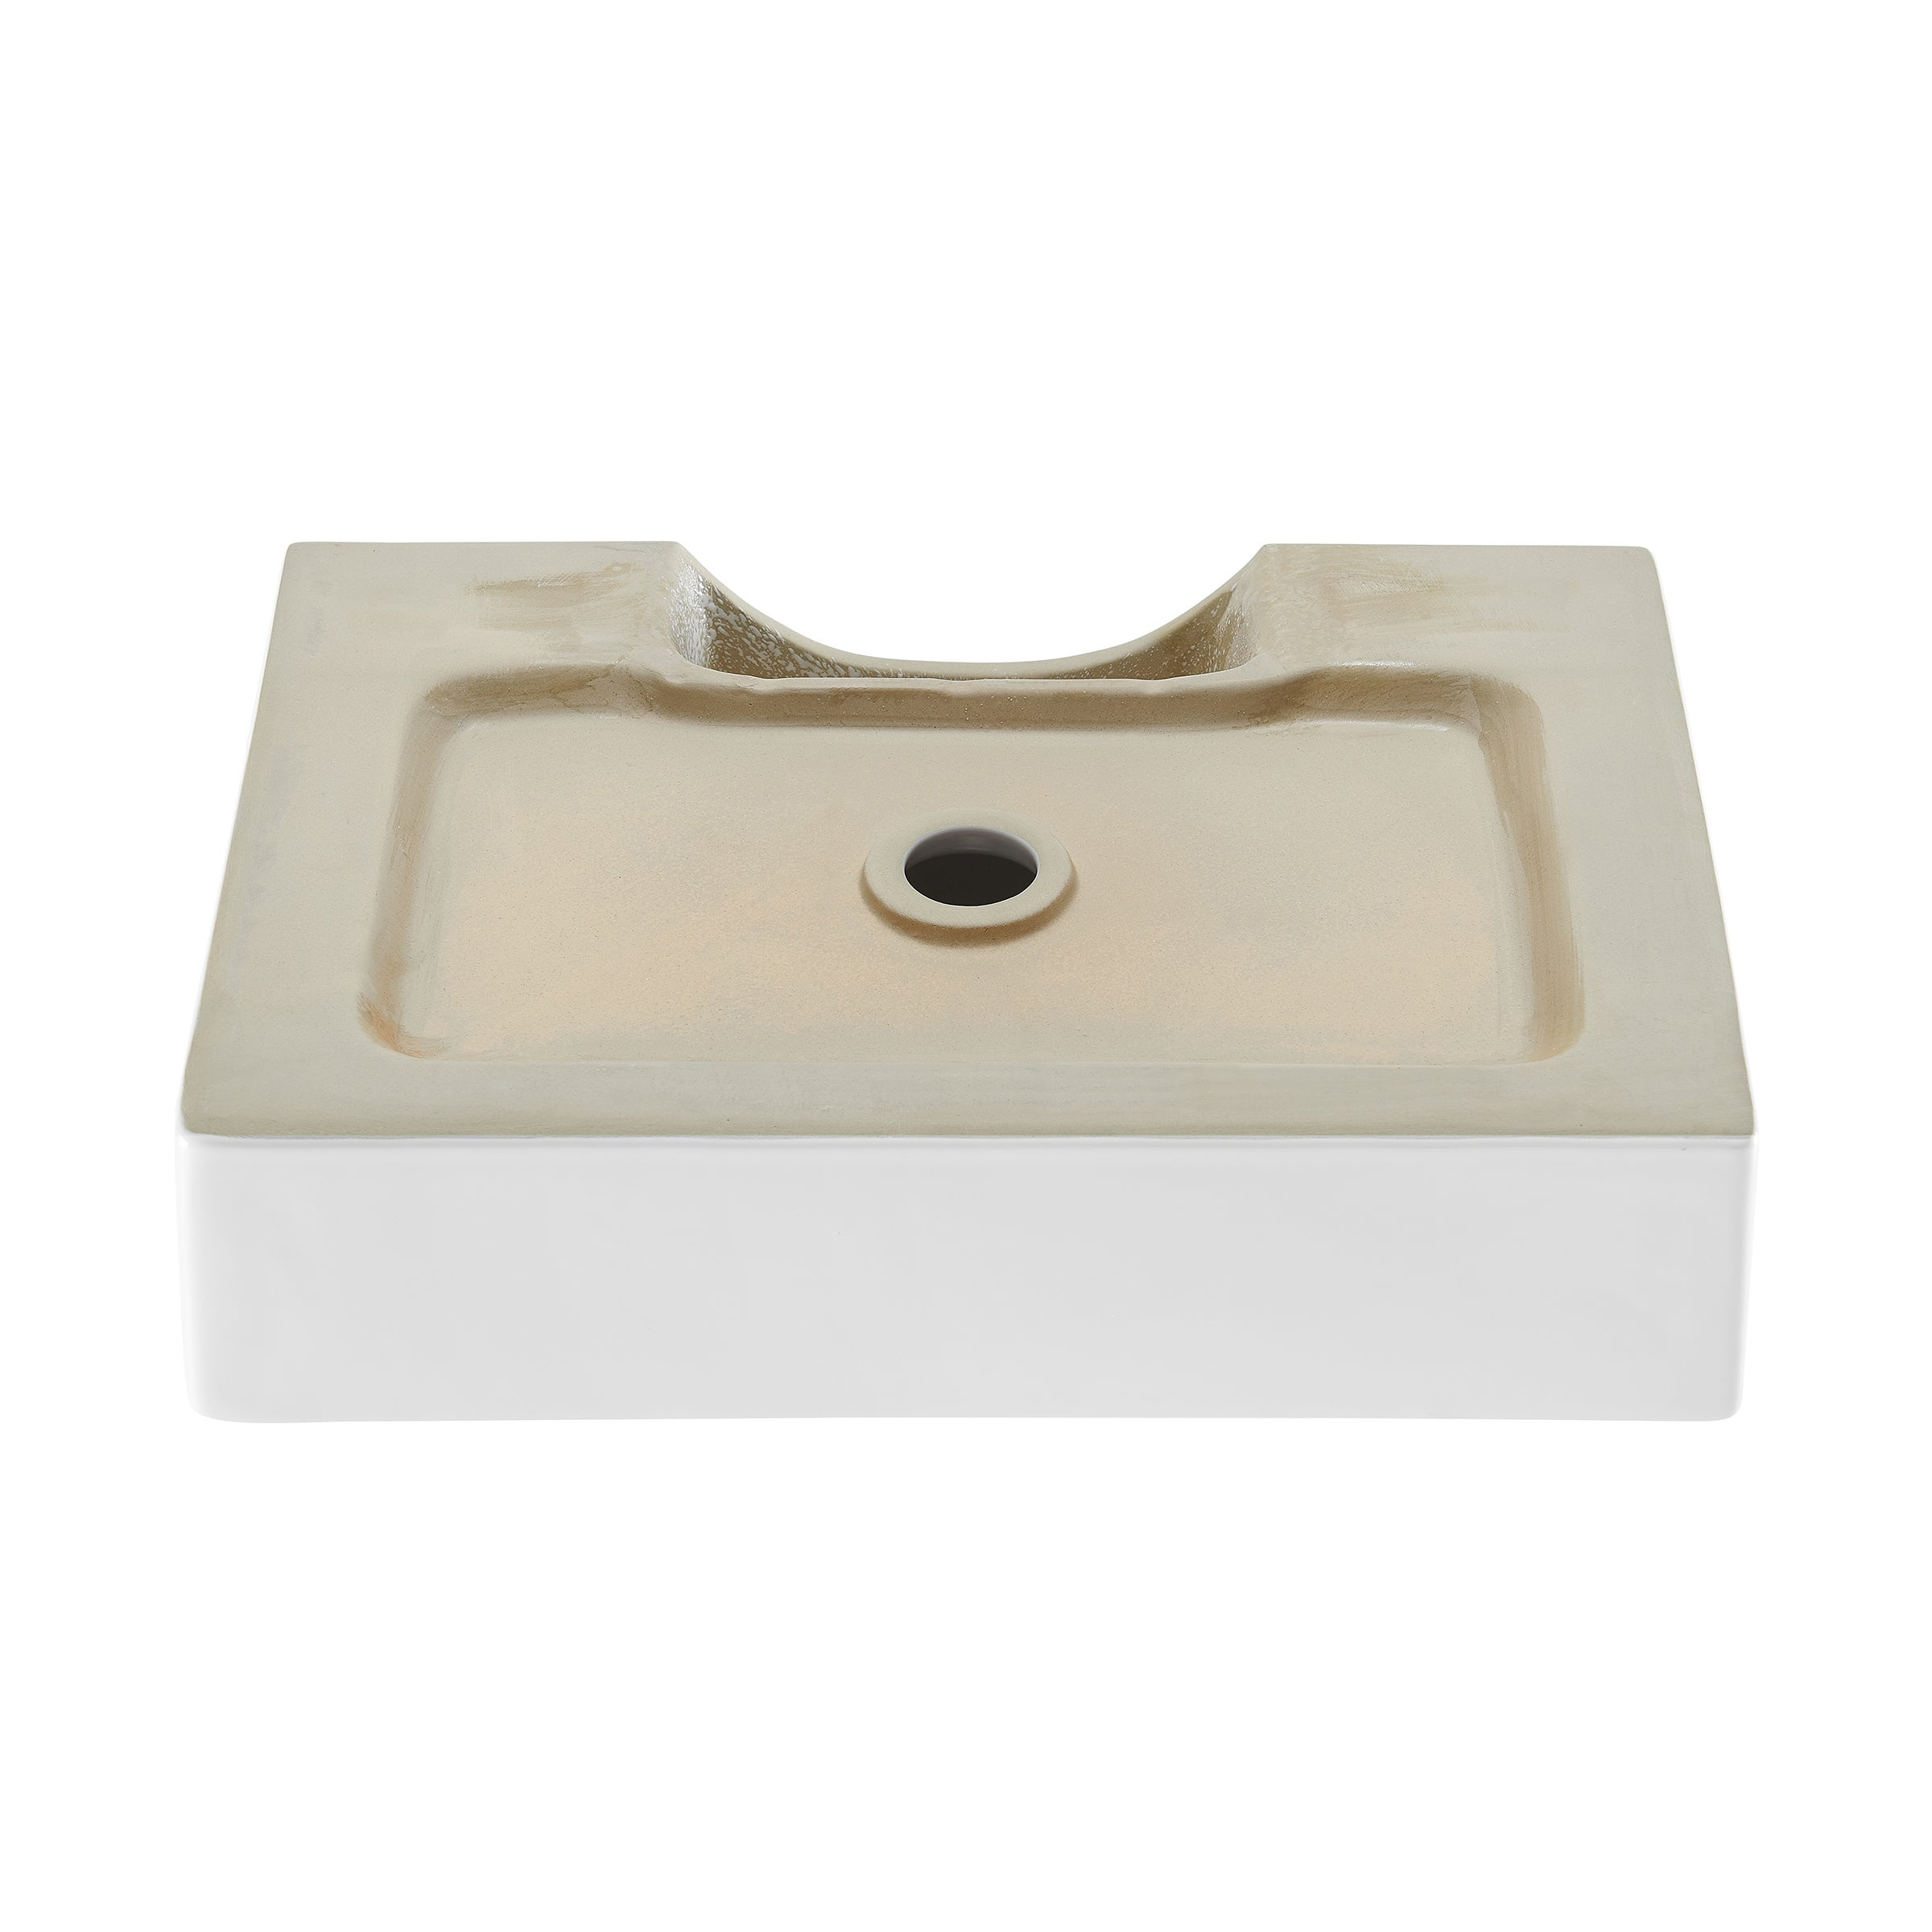 Swiss Madison Sm Vs203 Claire 20 Rectangle Ceramic Vessel Sink On Sale Overstock 30669835